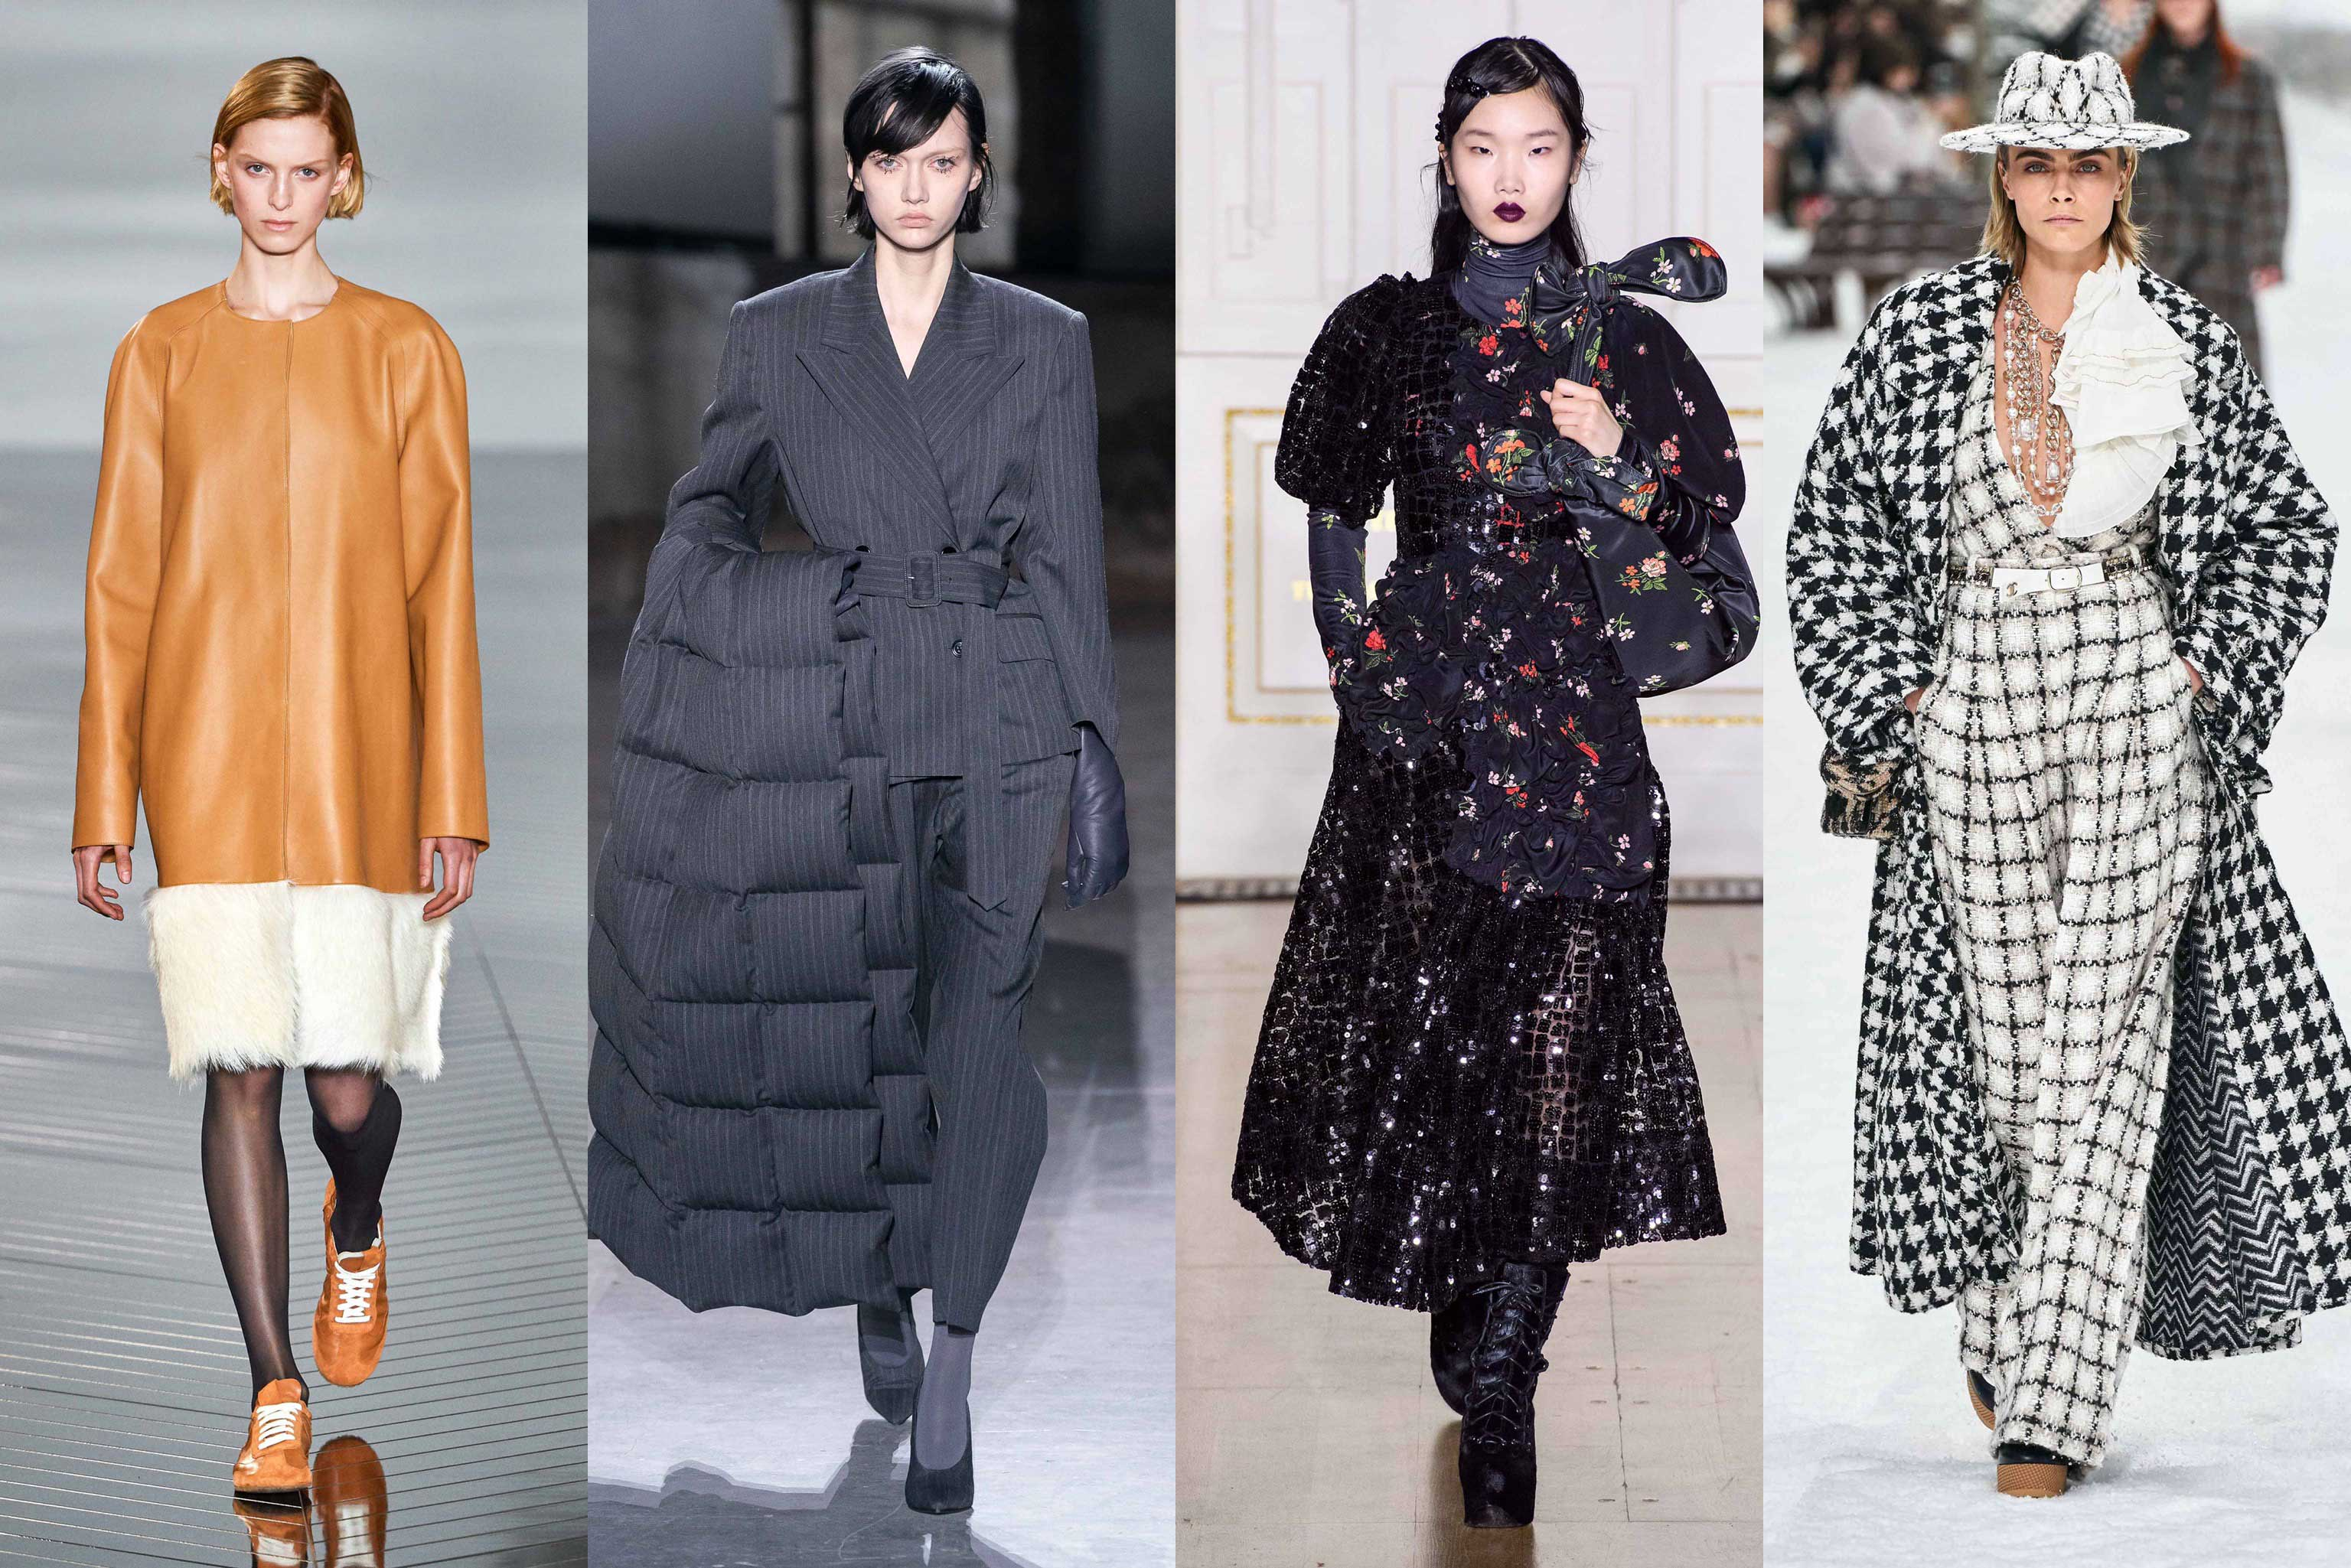 2019 Fall Winter Fashion Trends fall / 2019 fashion week report. Discover the biggest fall winter 2019 trends from New York, London, Milan and Paris fashion week on Modersvp.com/ Loewe, Dries Van Noten, Simone Rocha, Chanel